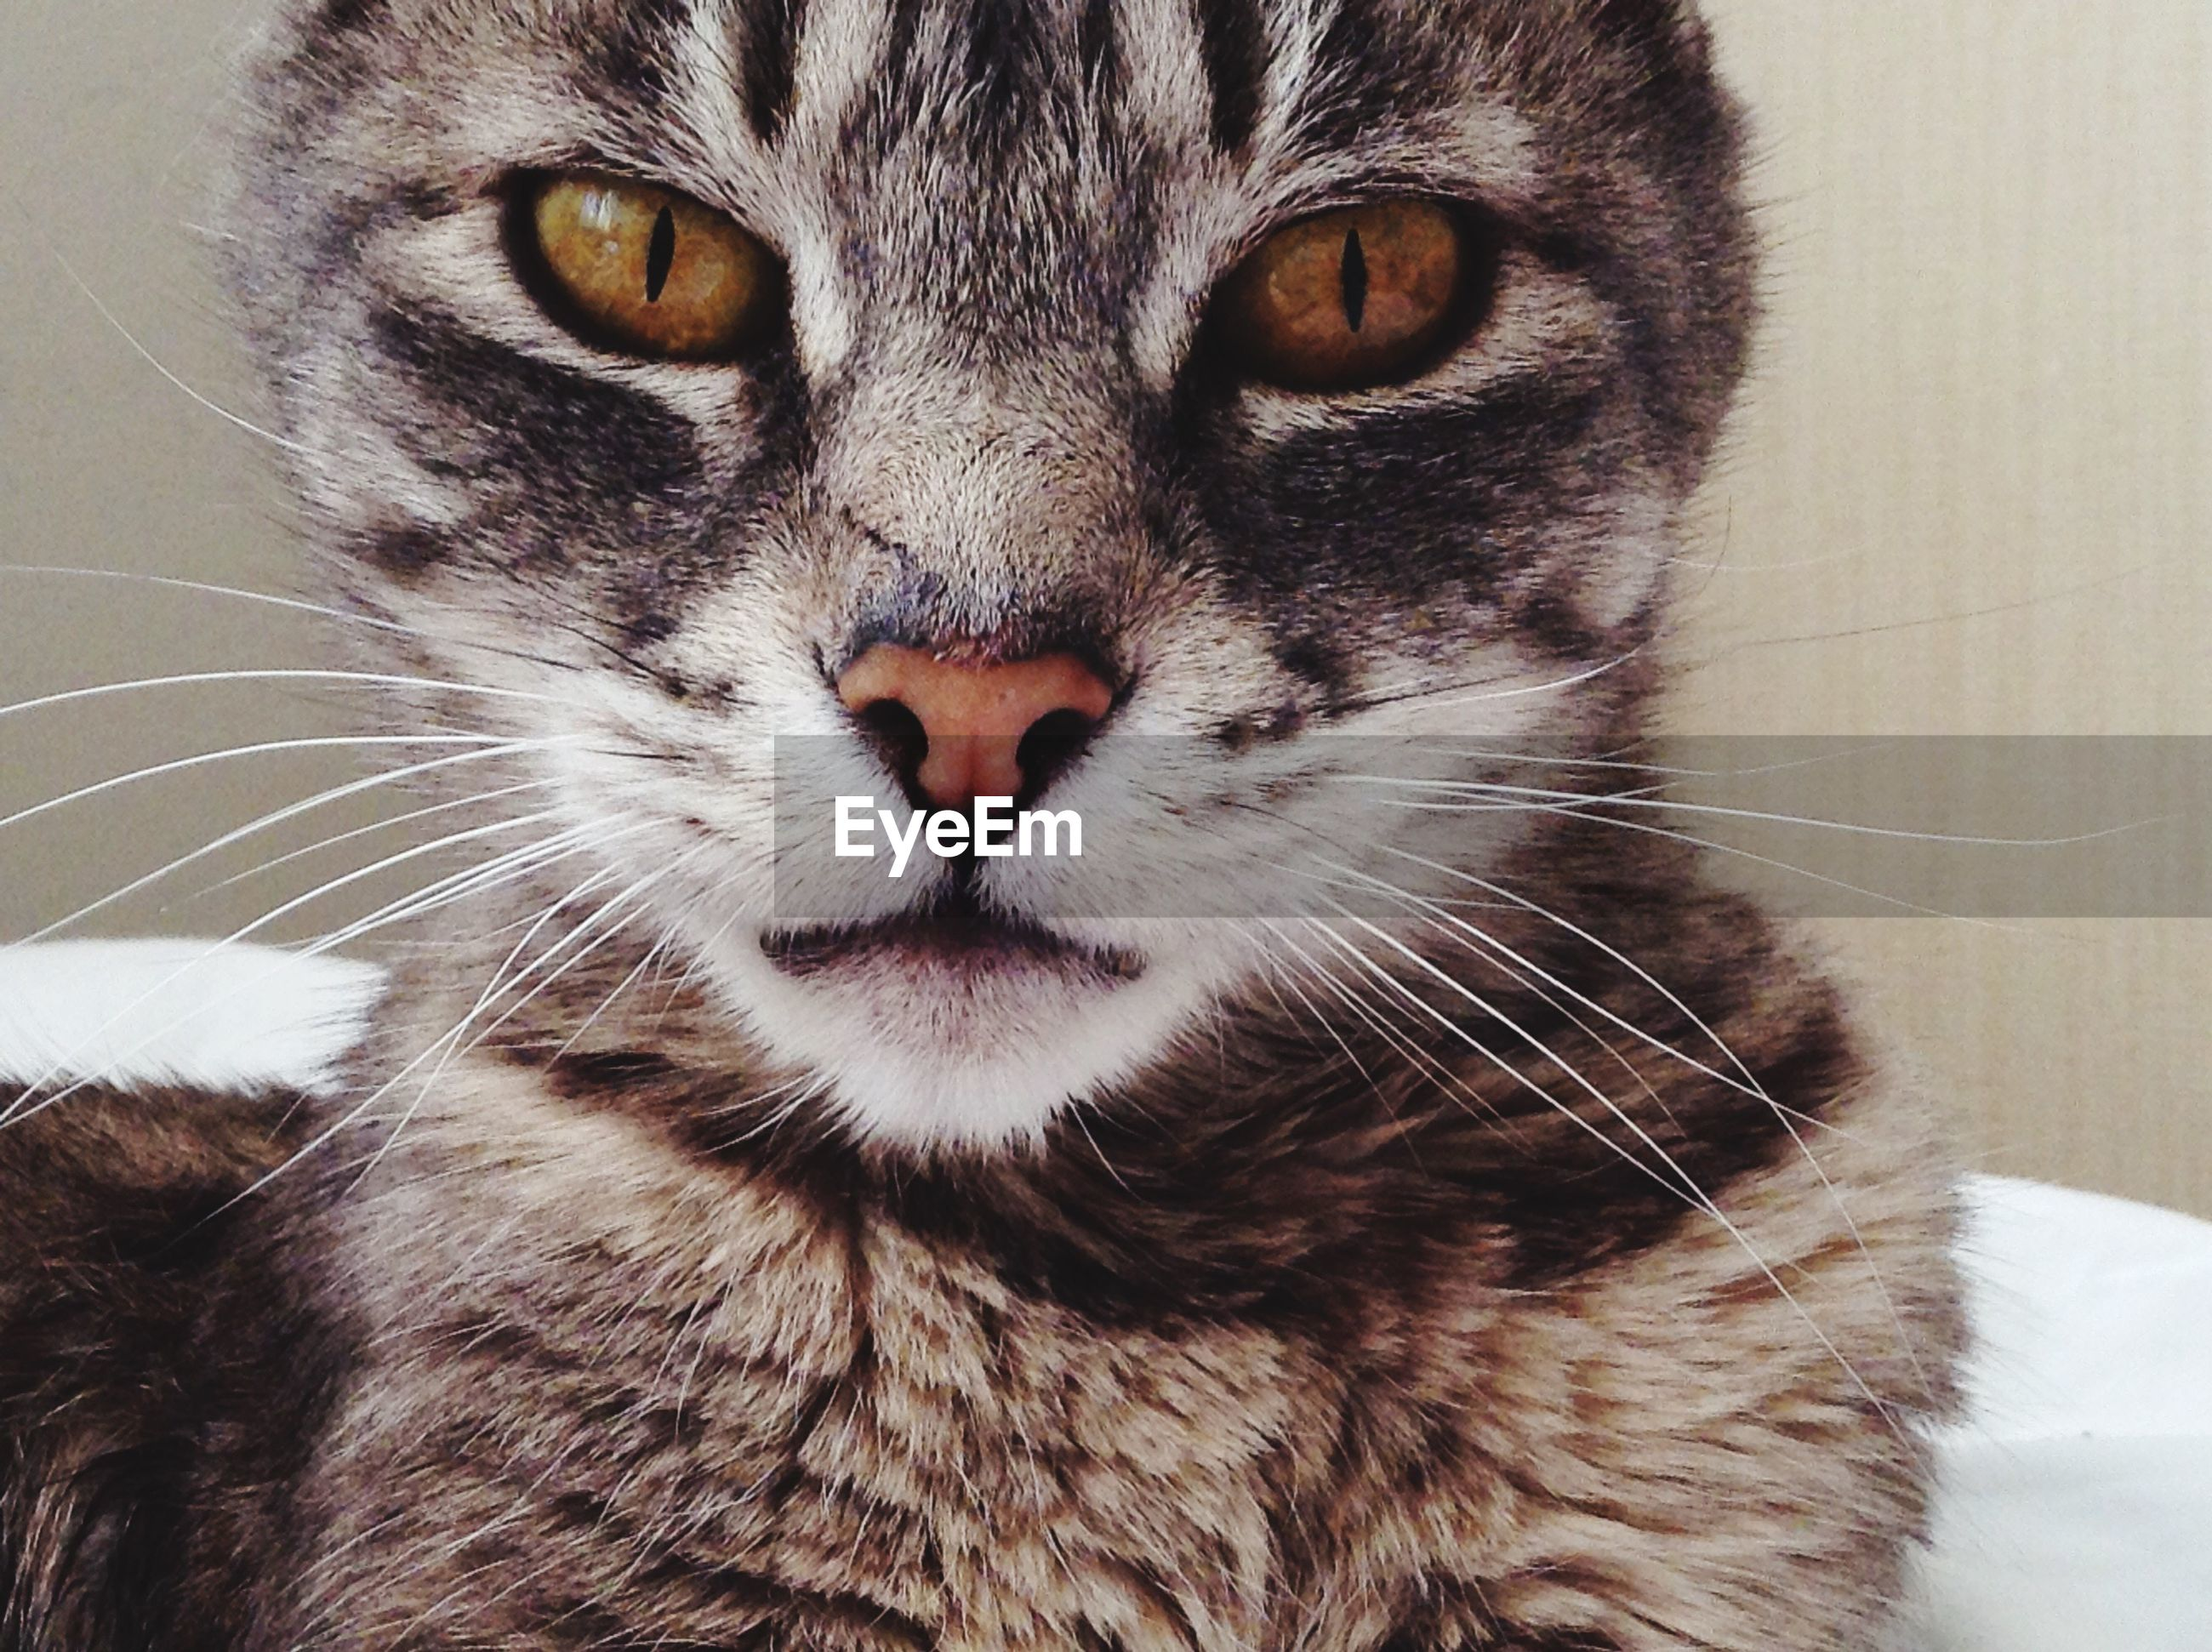 pets, domestic animals, domestic cat, one animal, animal themes, cat, mammal, feline, whisker, portrait, looking at camera, close-up, animal head, indoors, animal eye, animal body part, staring, alertness, front view